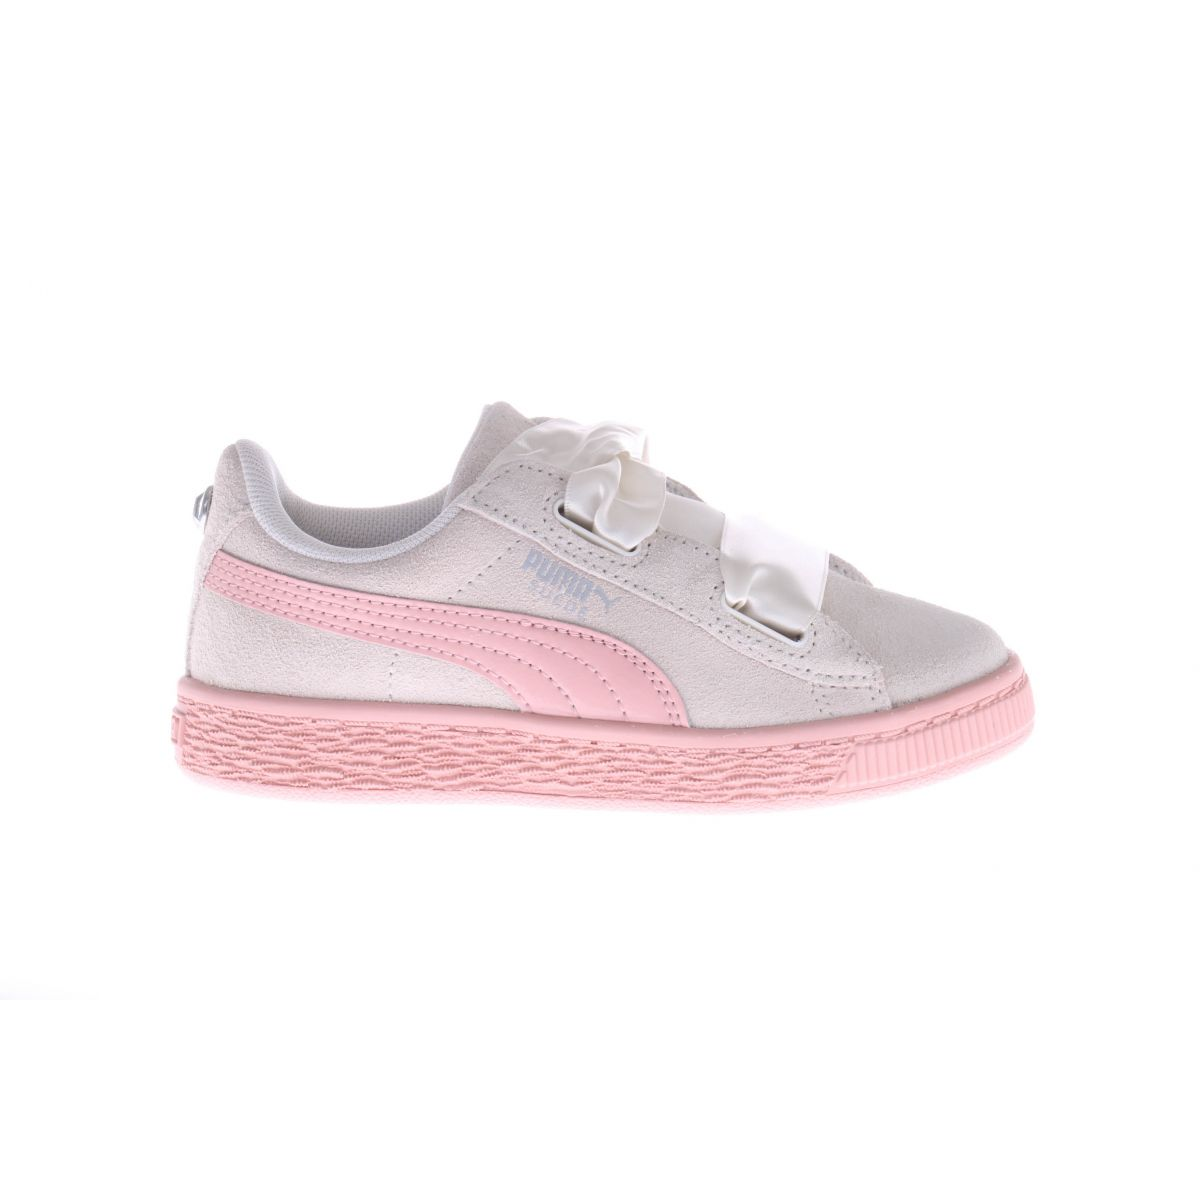 Puma Heart Jewel Sneaker striklint wit roze